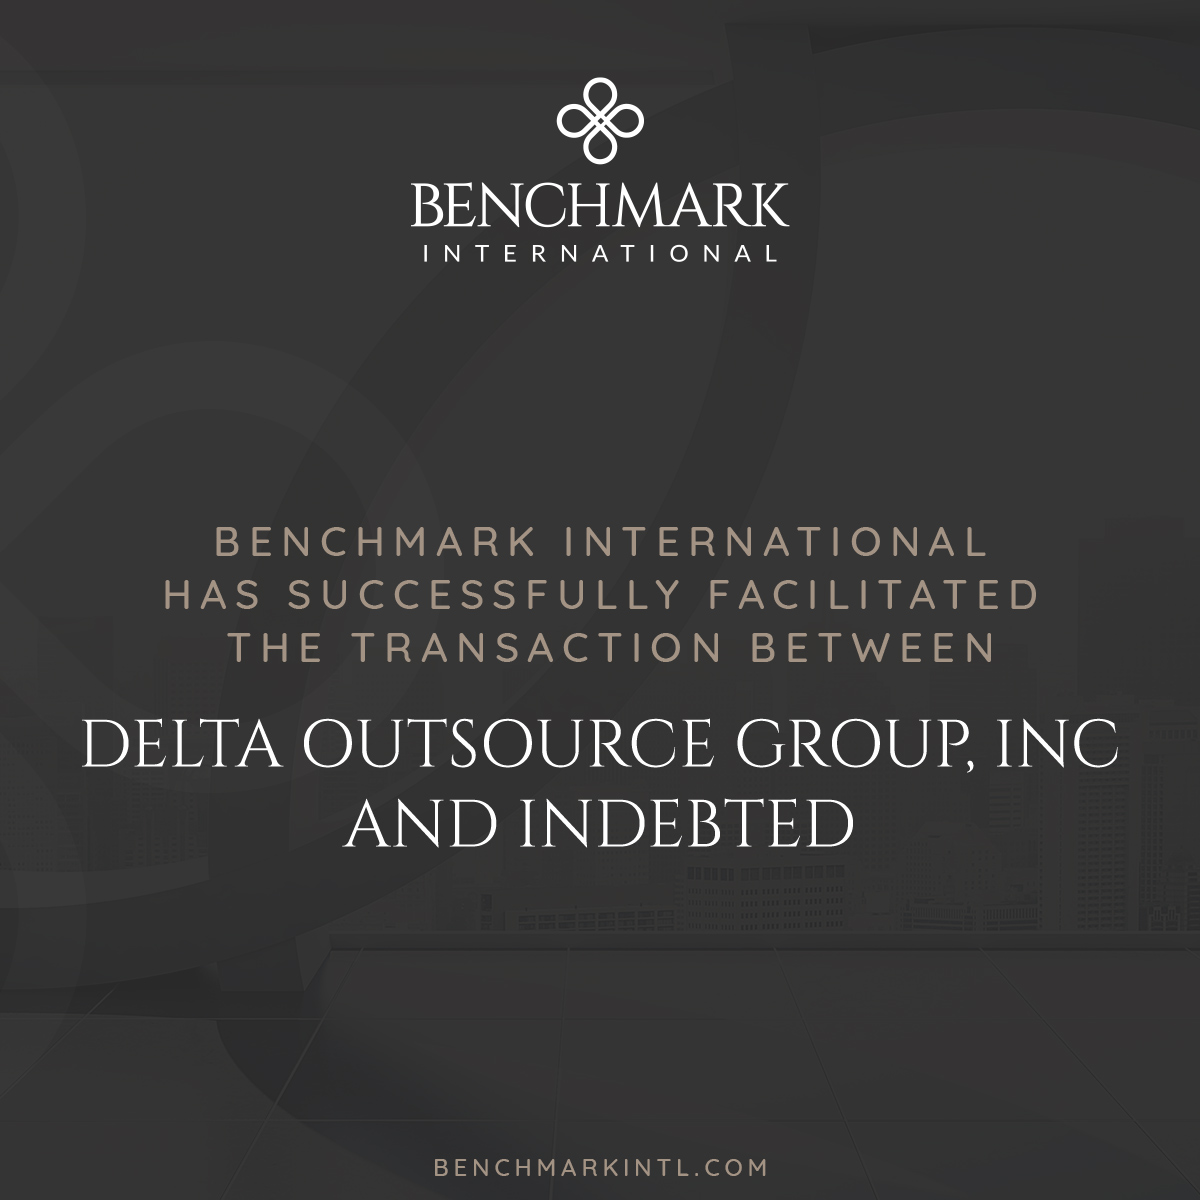 Delta_Outsource_Group_and_Indebted_Social